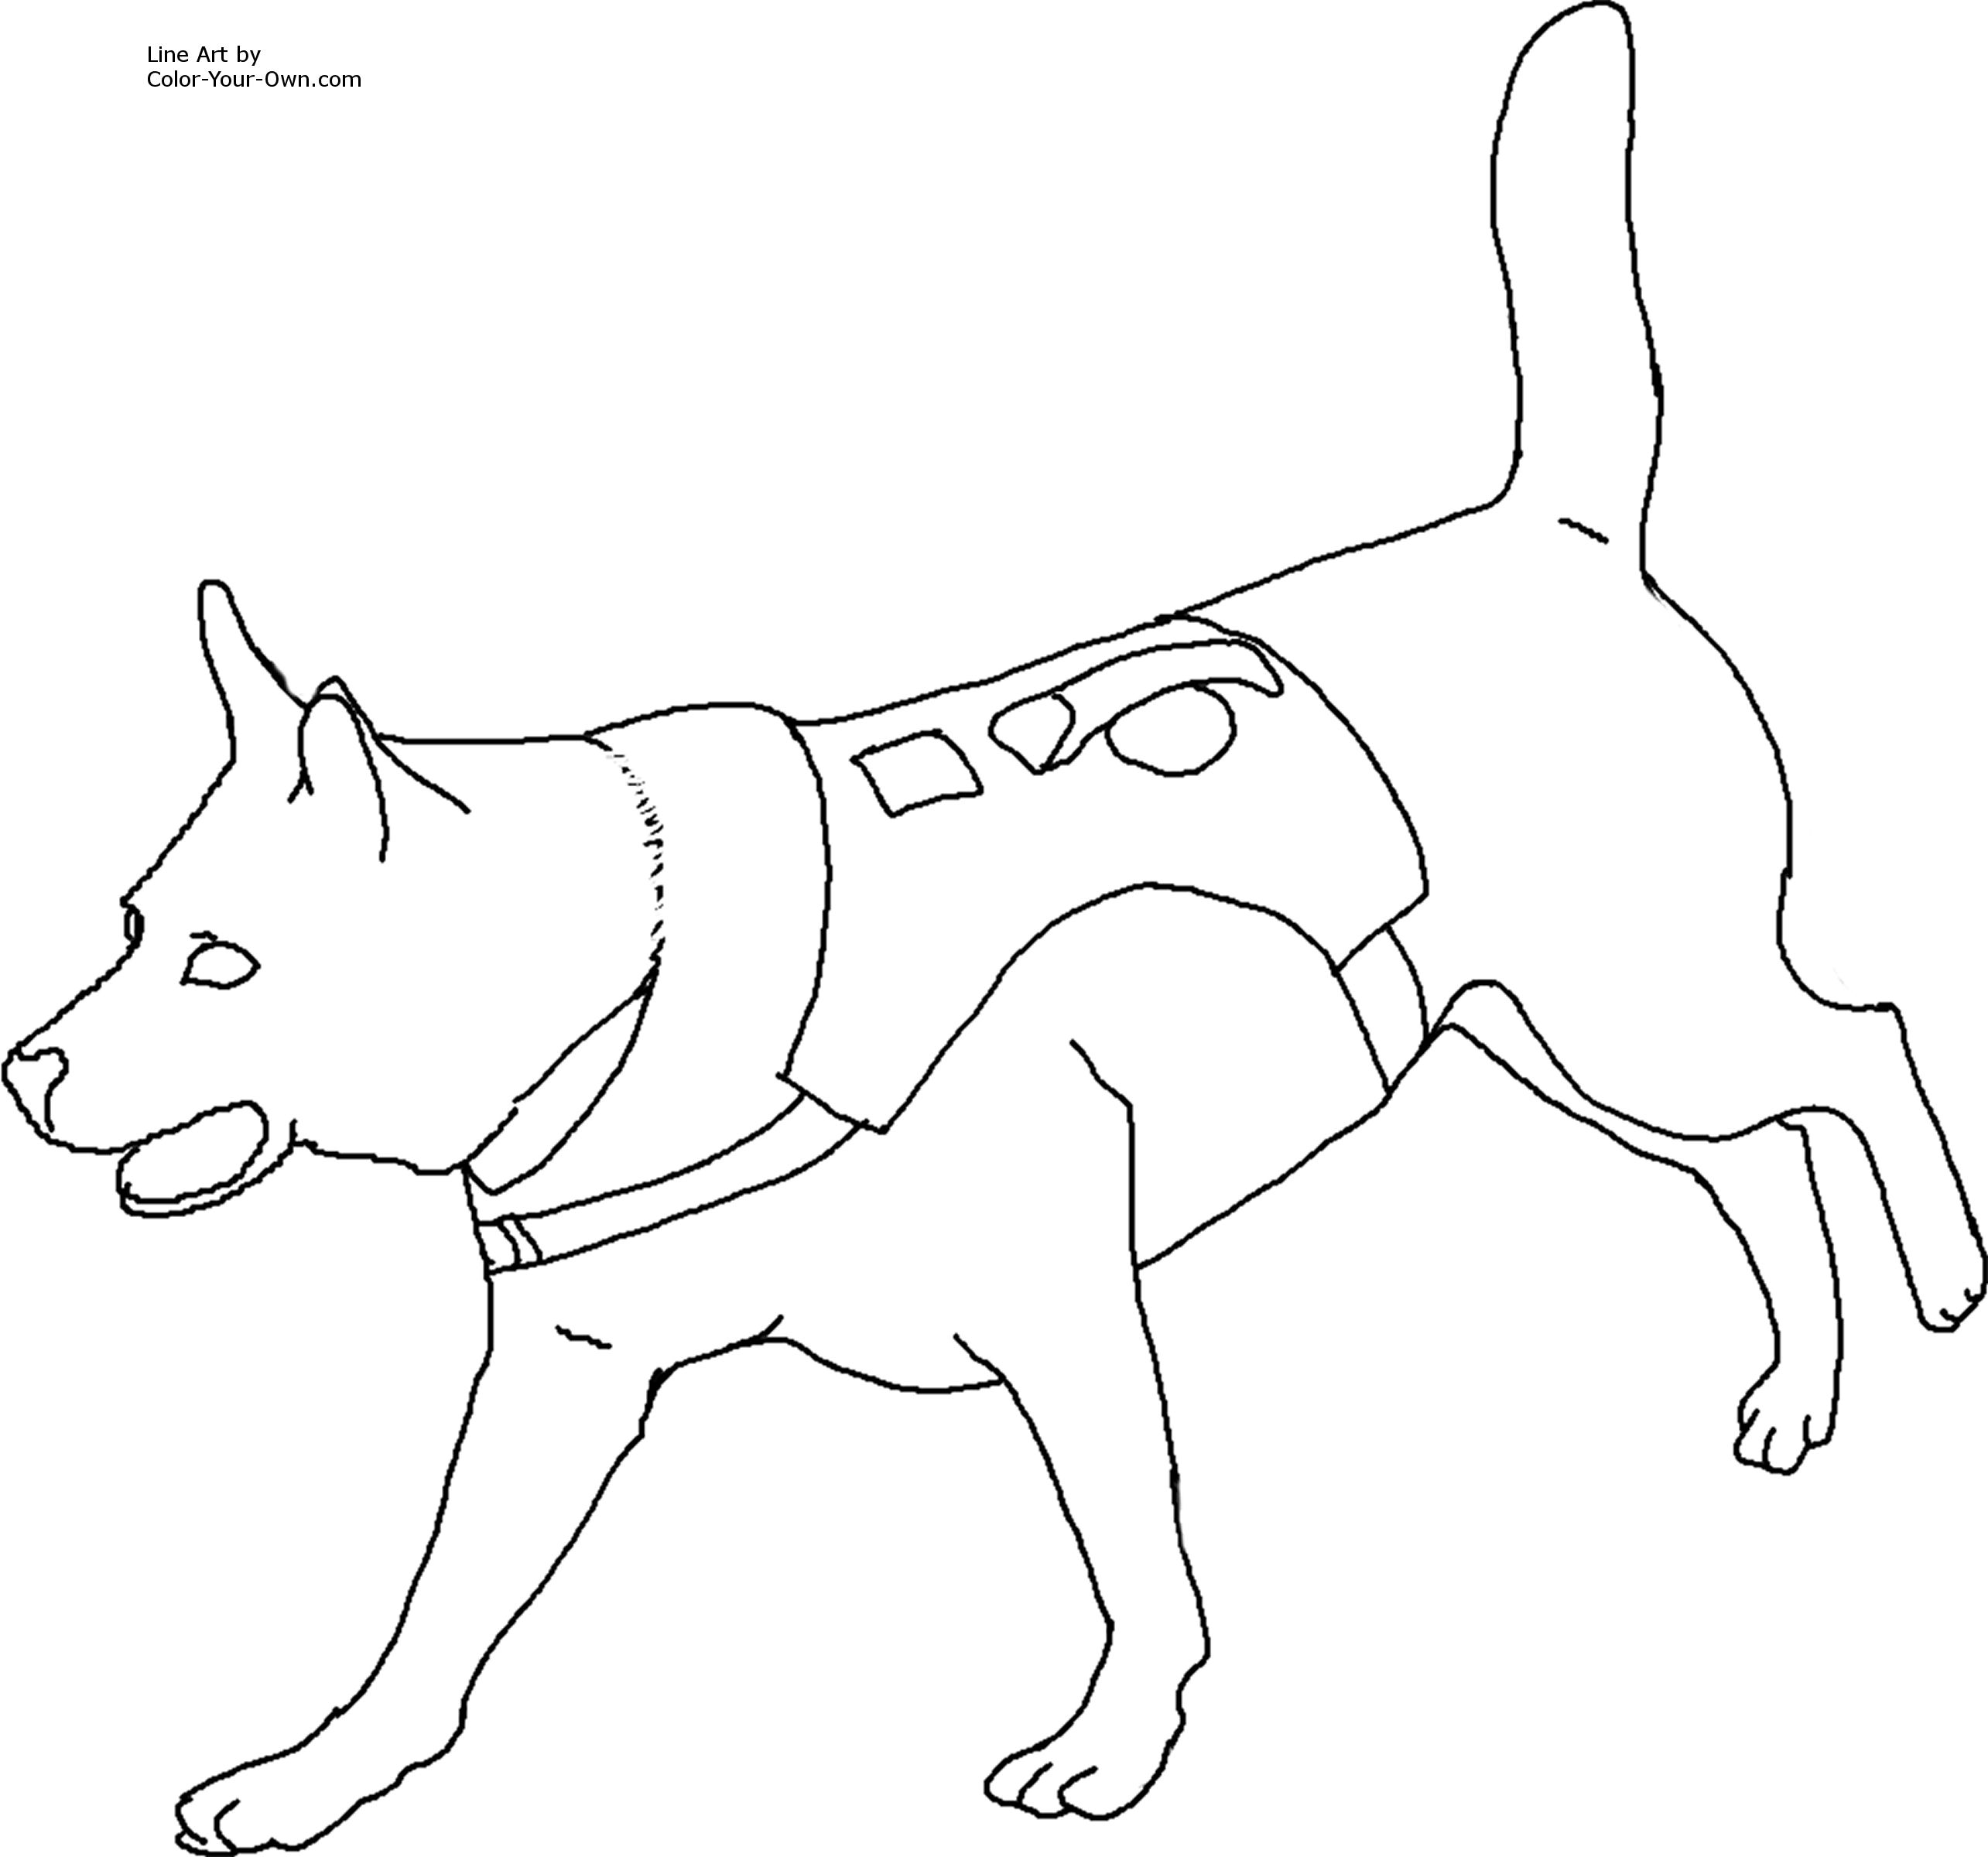 Search and Rescue Dog Coloring